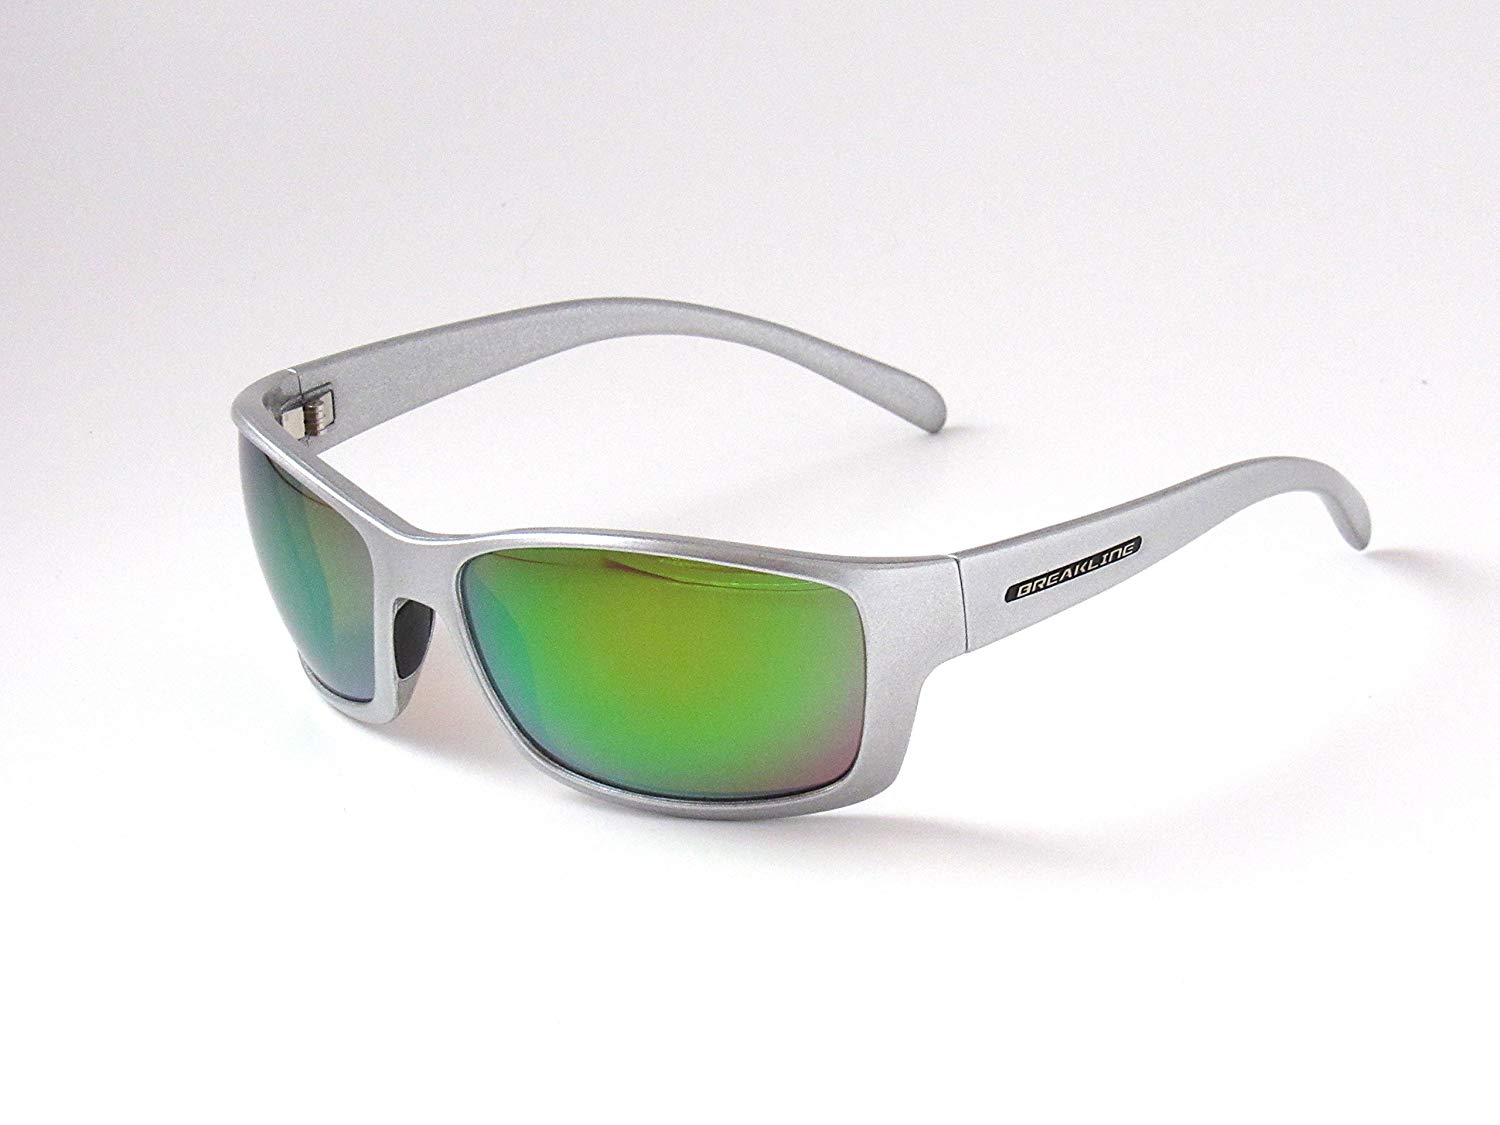 Get Quotations · Steel Shad - BreakLine Polarized Sunglasses - Jim Root  Edition - Green Mirror Lens - Plus 2994d8c8ced1